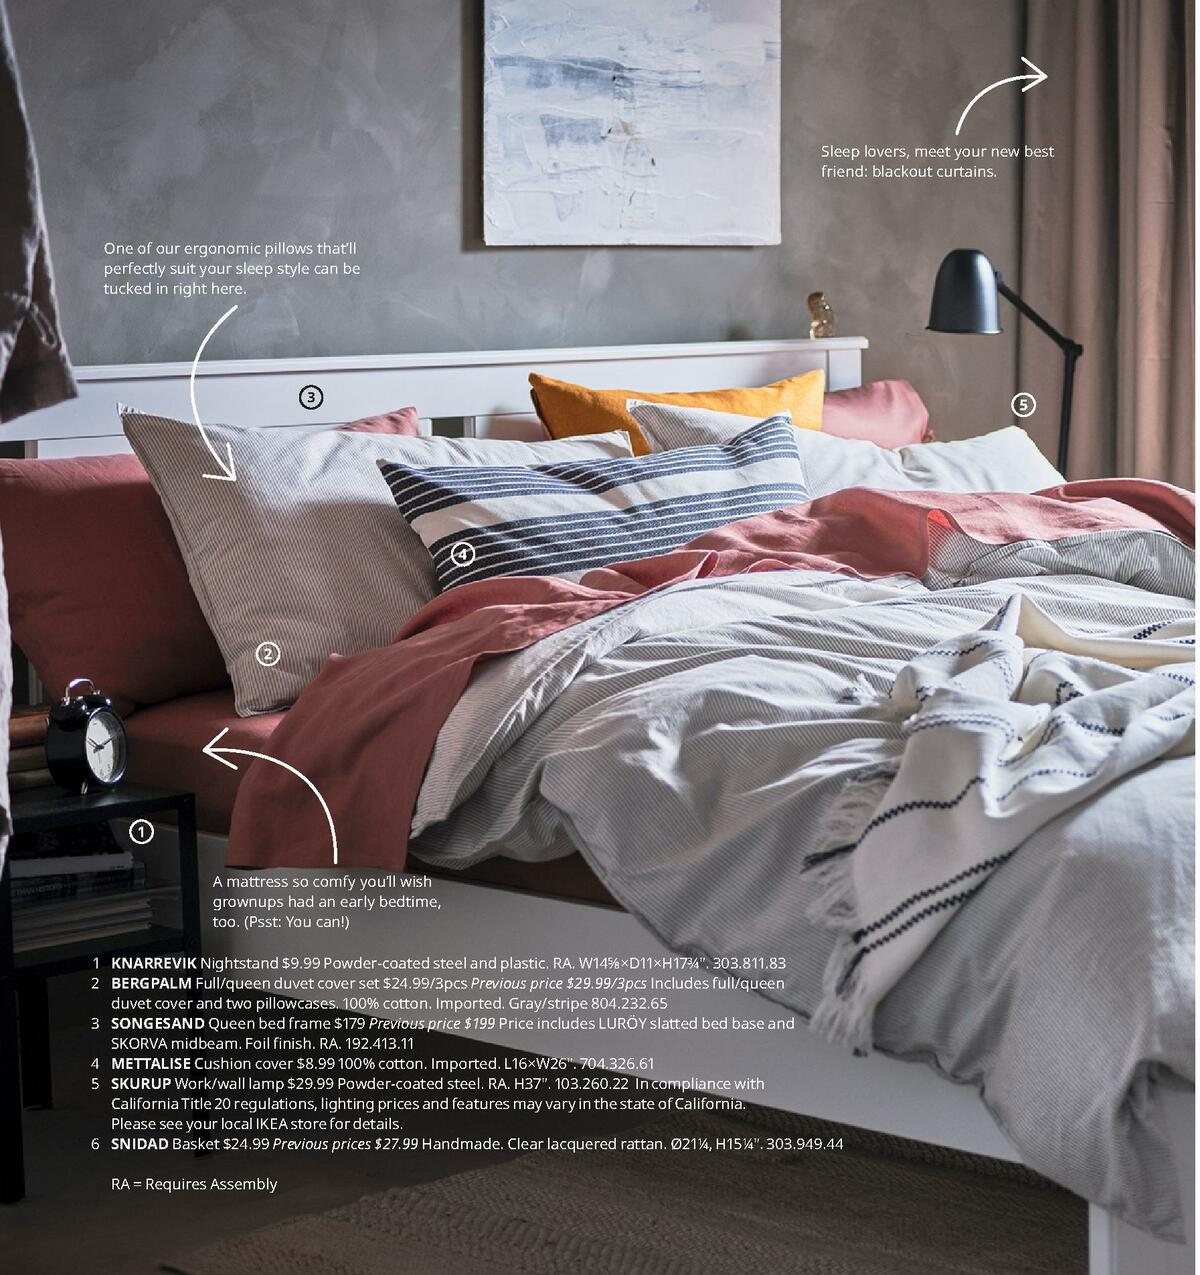 IKEA Weekly Ad from September 4